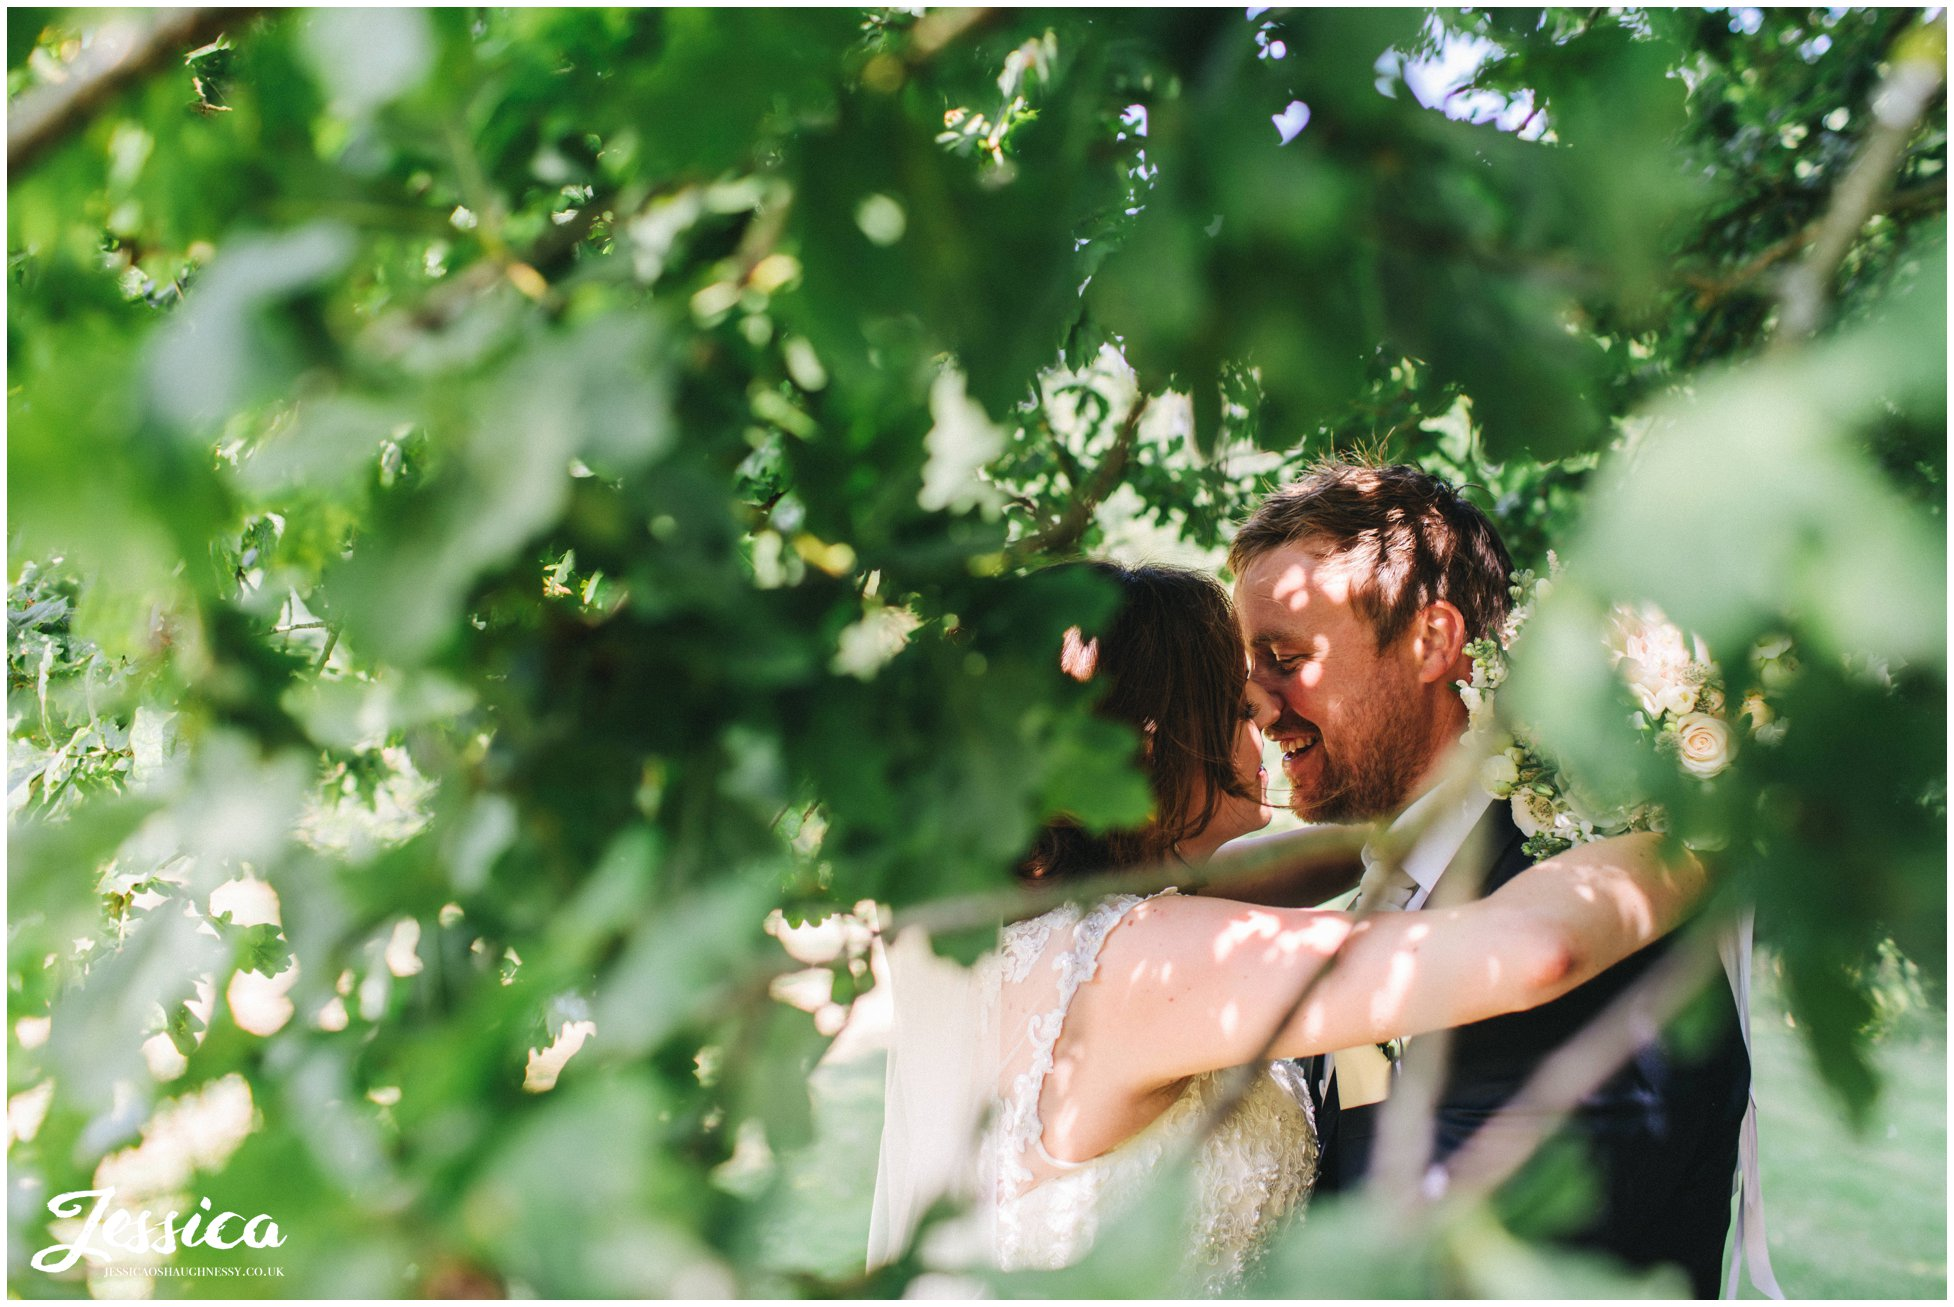 the newly wed's kiss through a gap in the leaves